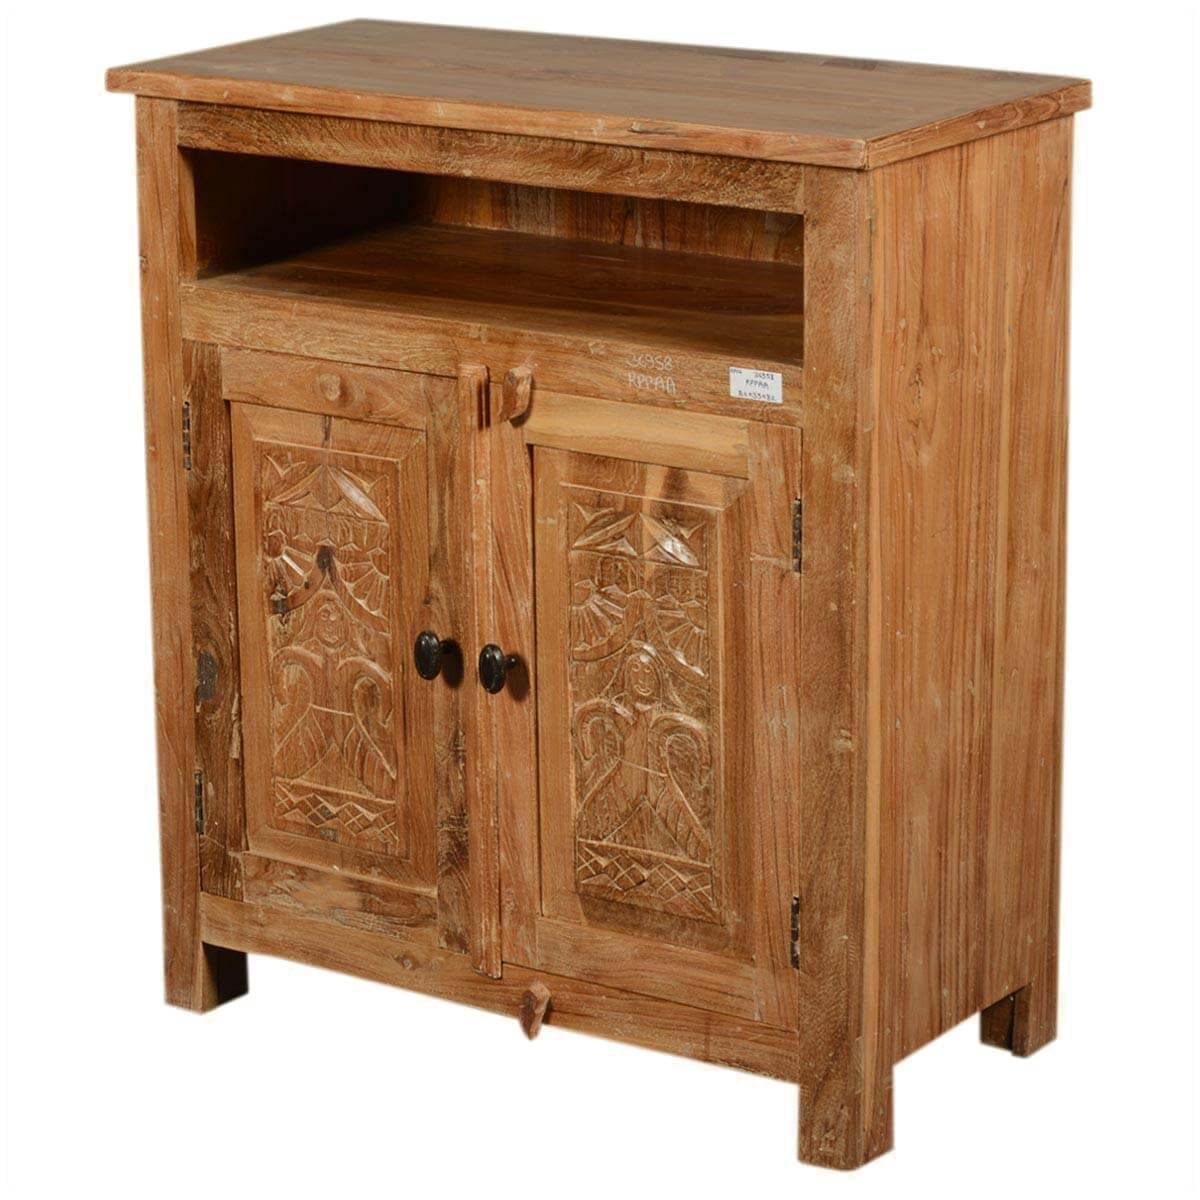 hand carved mango wood salvatore storage cabinet with open dining room corner storage cabinets Living Room Storage Cabinets